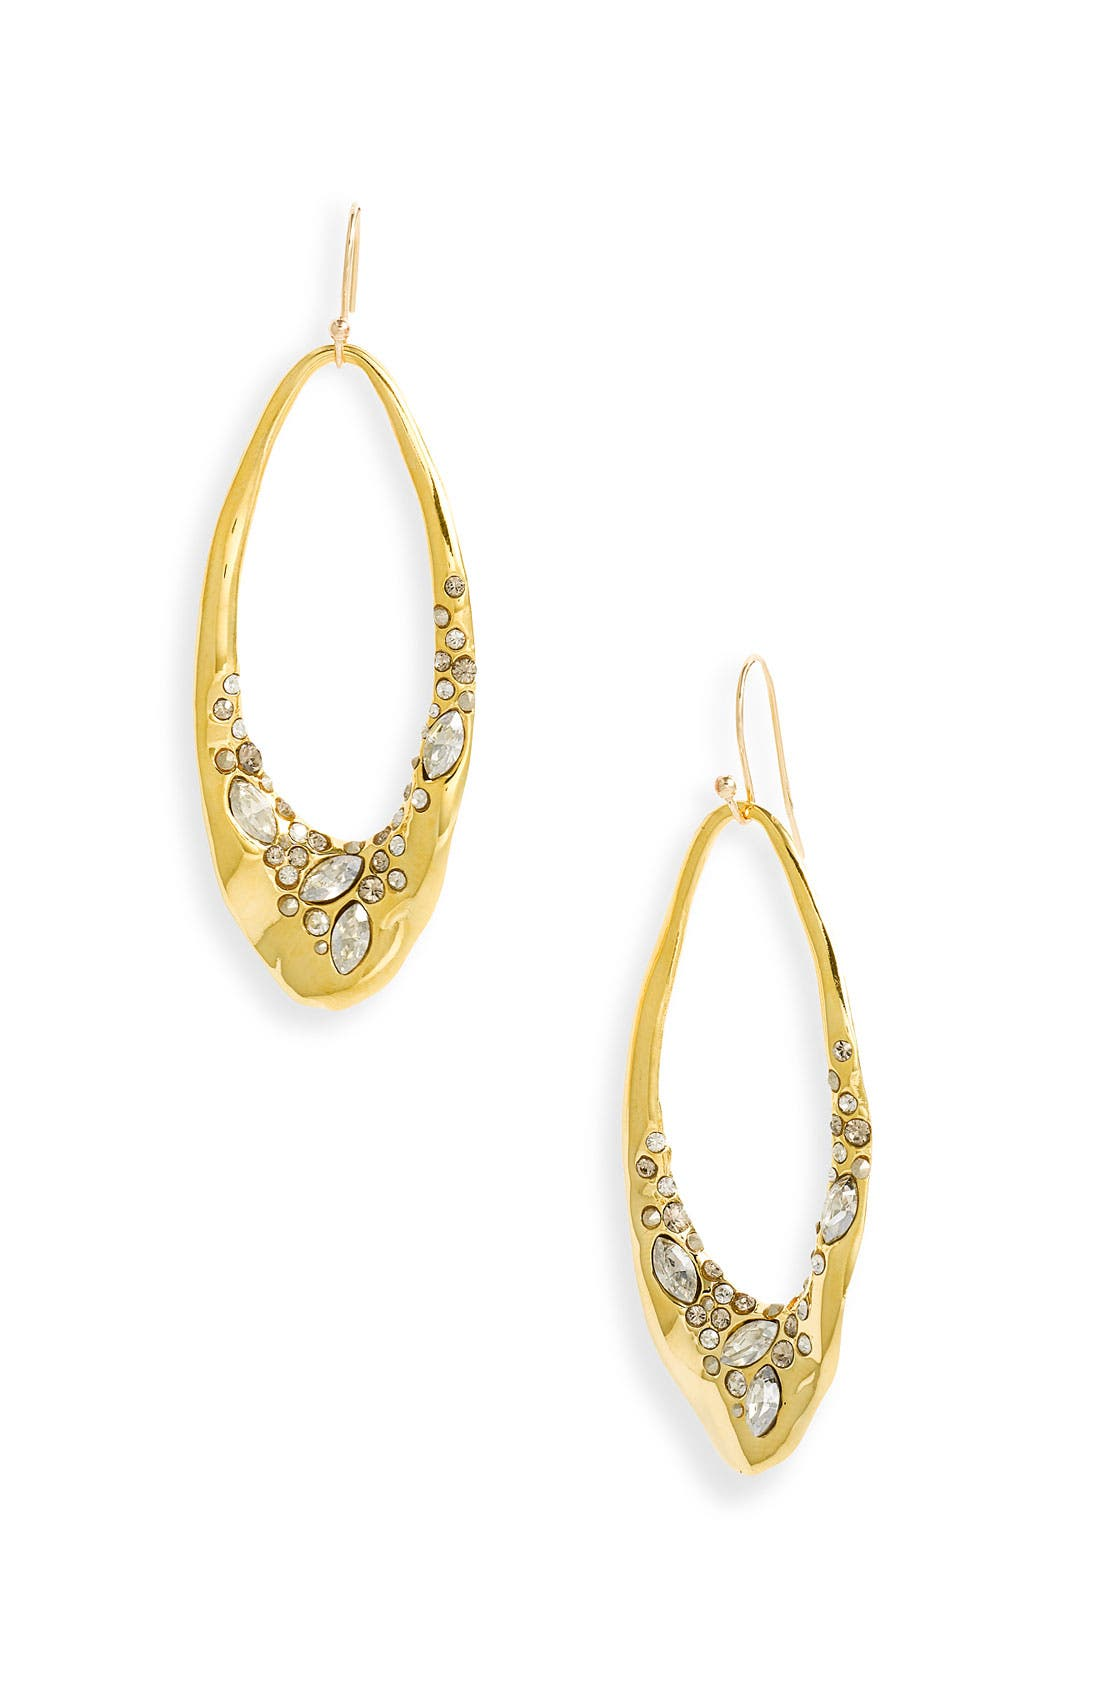 Main Image - Alexis Bittar 'Miss Havisham' Encrusted Liquid Link Earrings